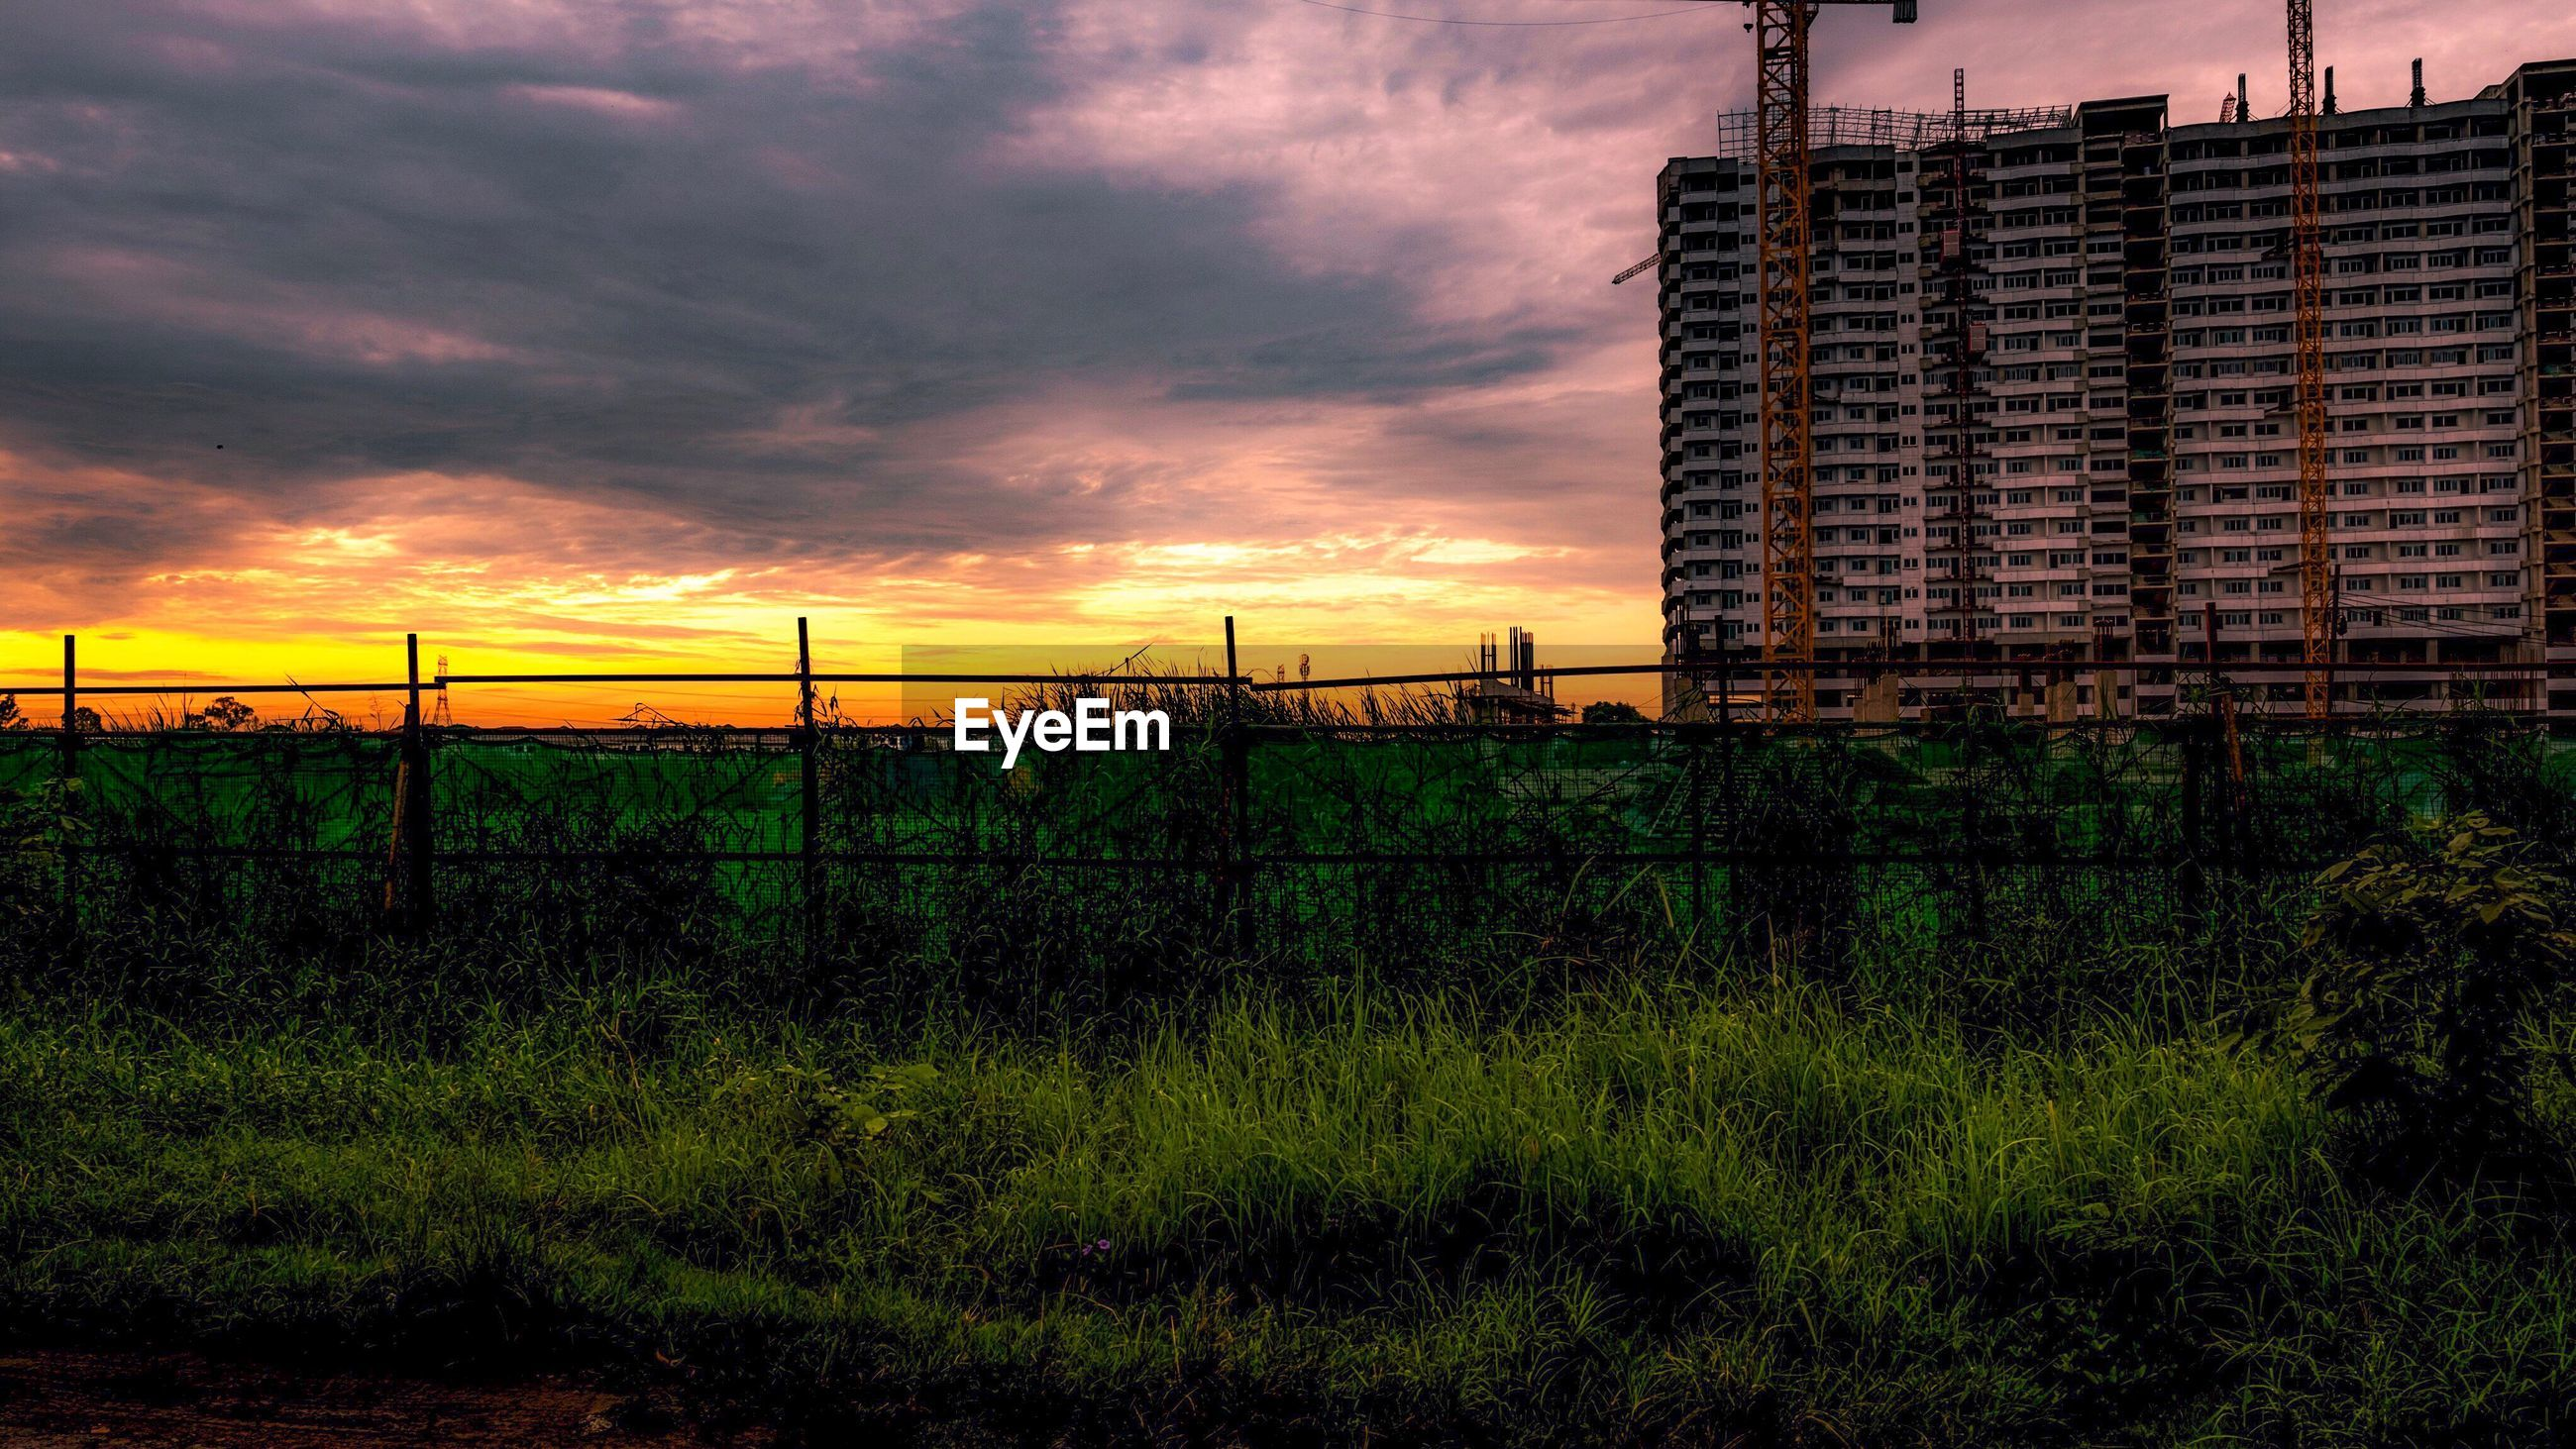 sunset, sky, architecture, built structure, cloud - sky, no people, outdoors, building exterior, growth, grass, nature, day